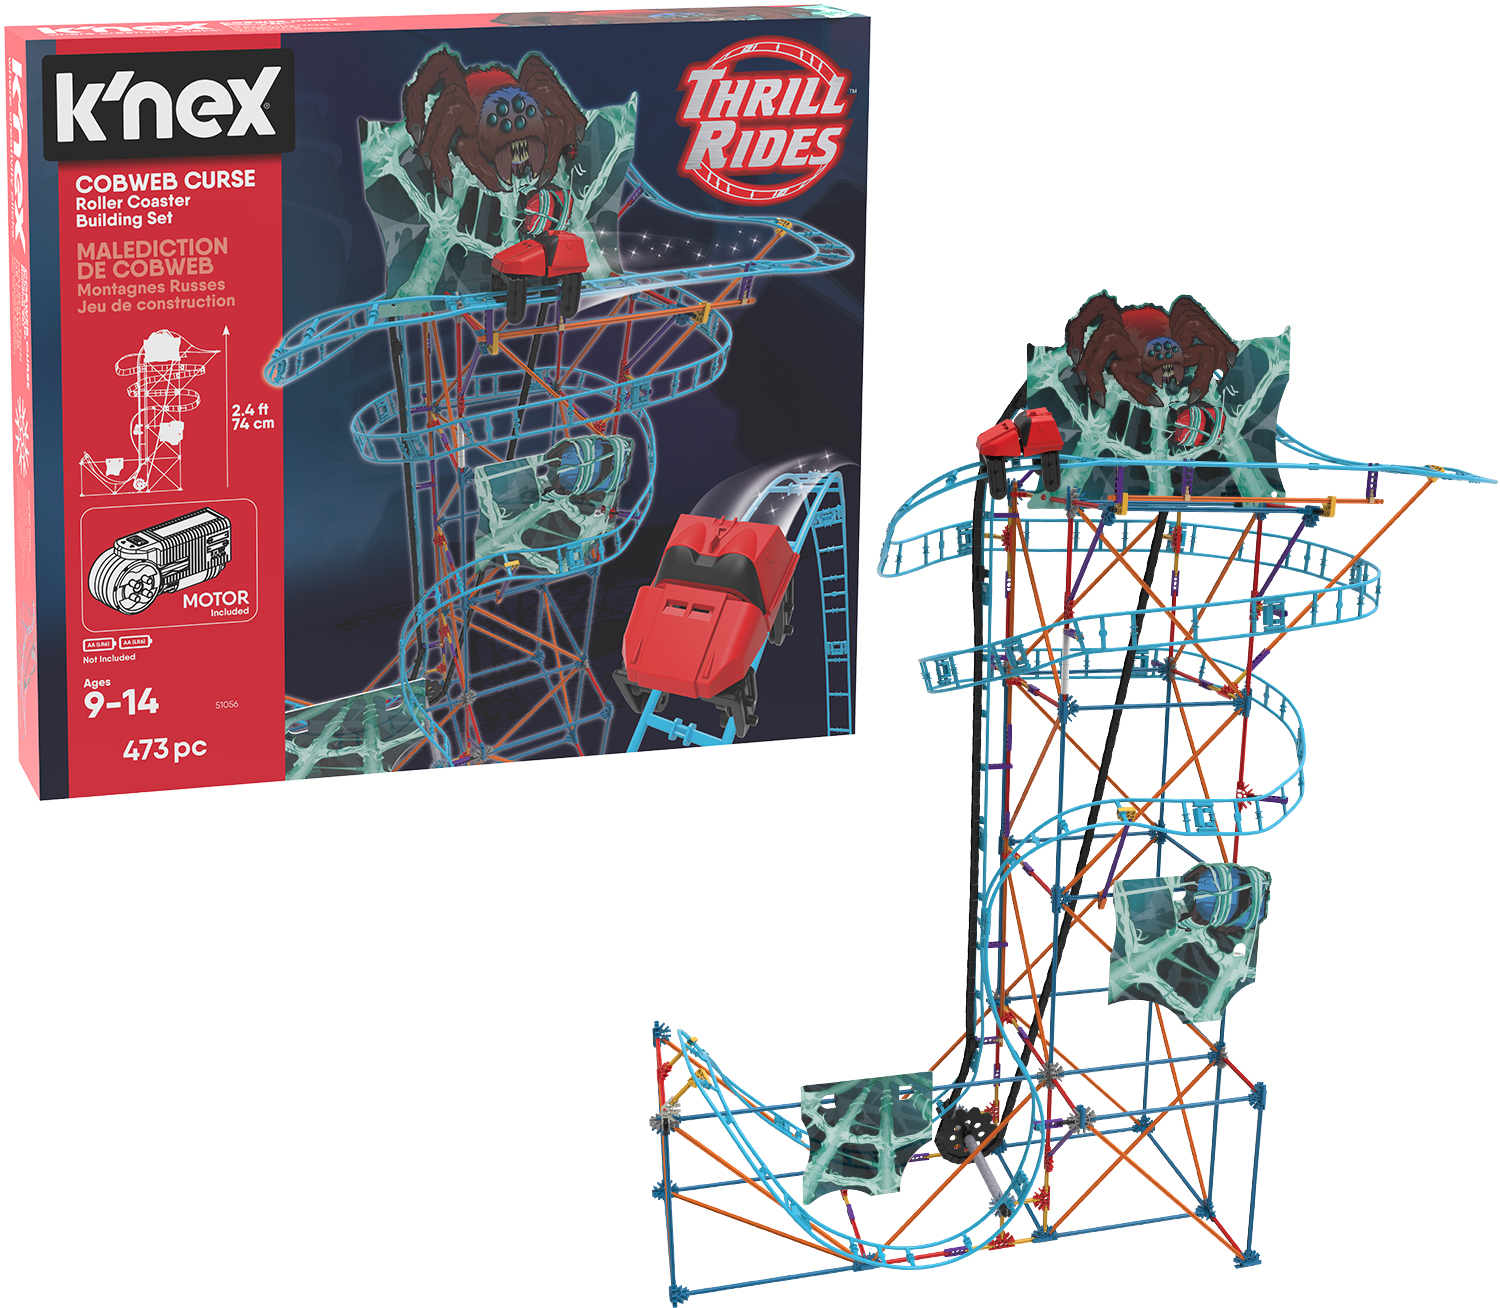 K Nex Thrill Rides Cobweb Curse Roller Coaster Building Set 473 Pieces Ages 9 Construction Educational Toy Walmart Com Walmart Com